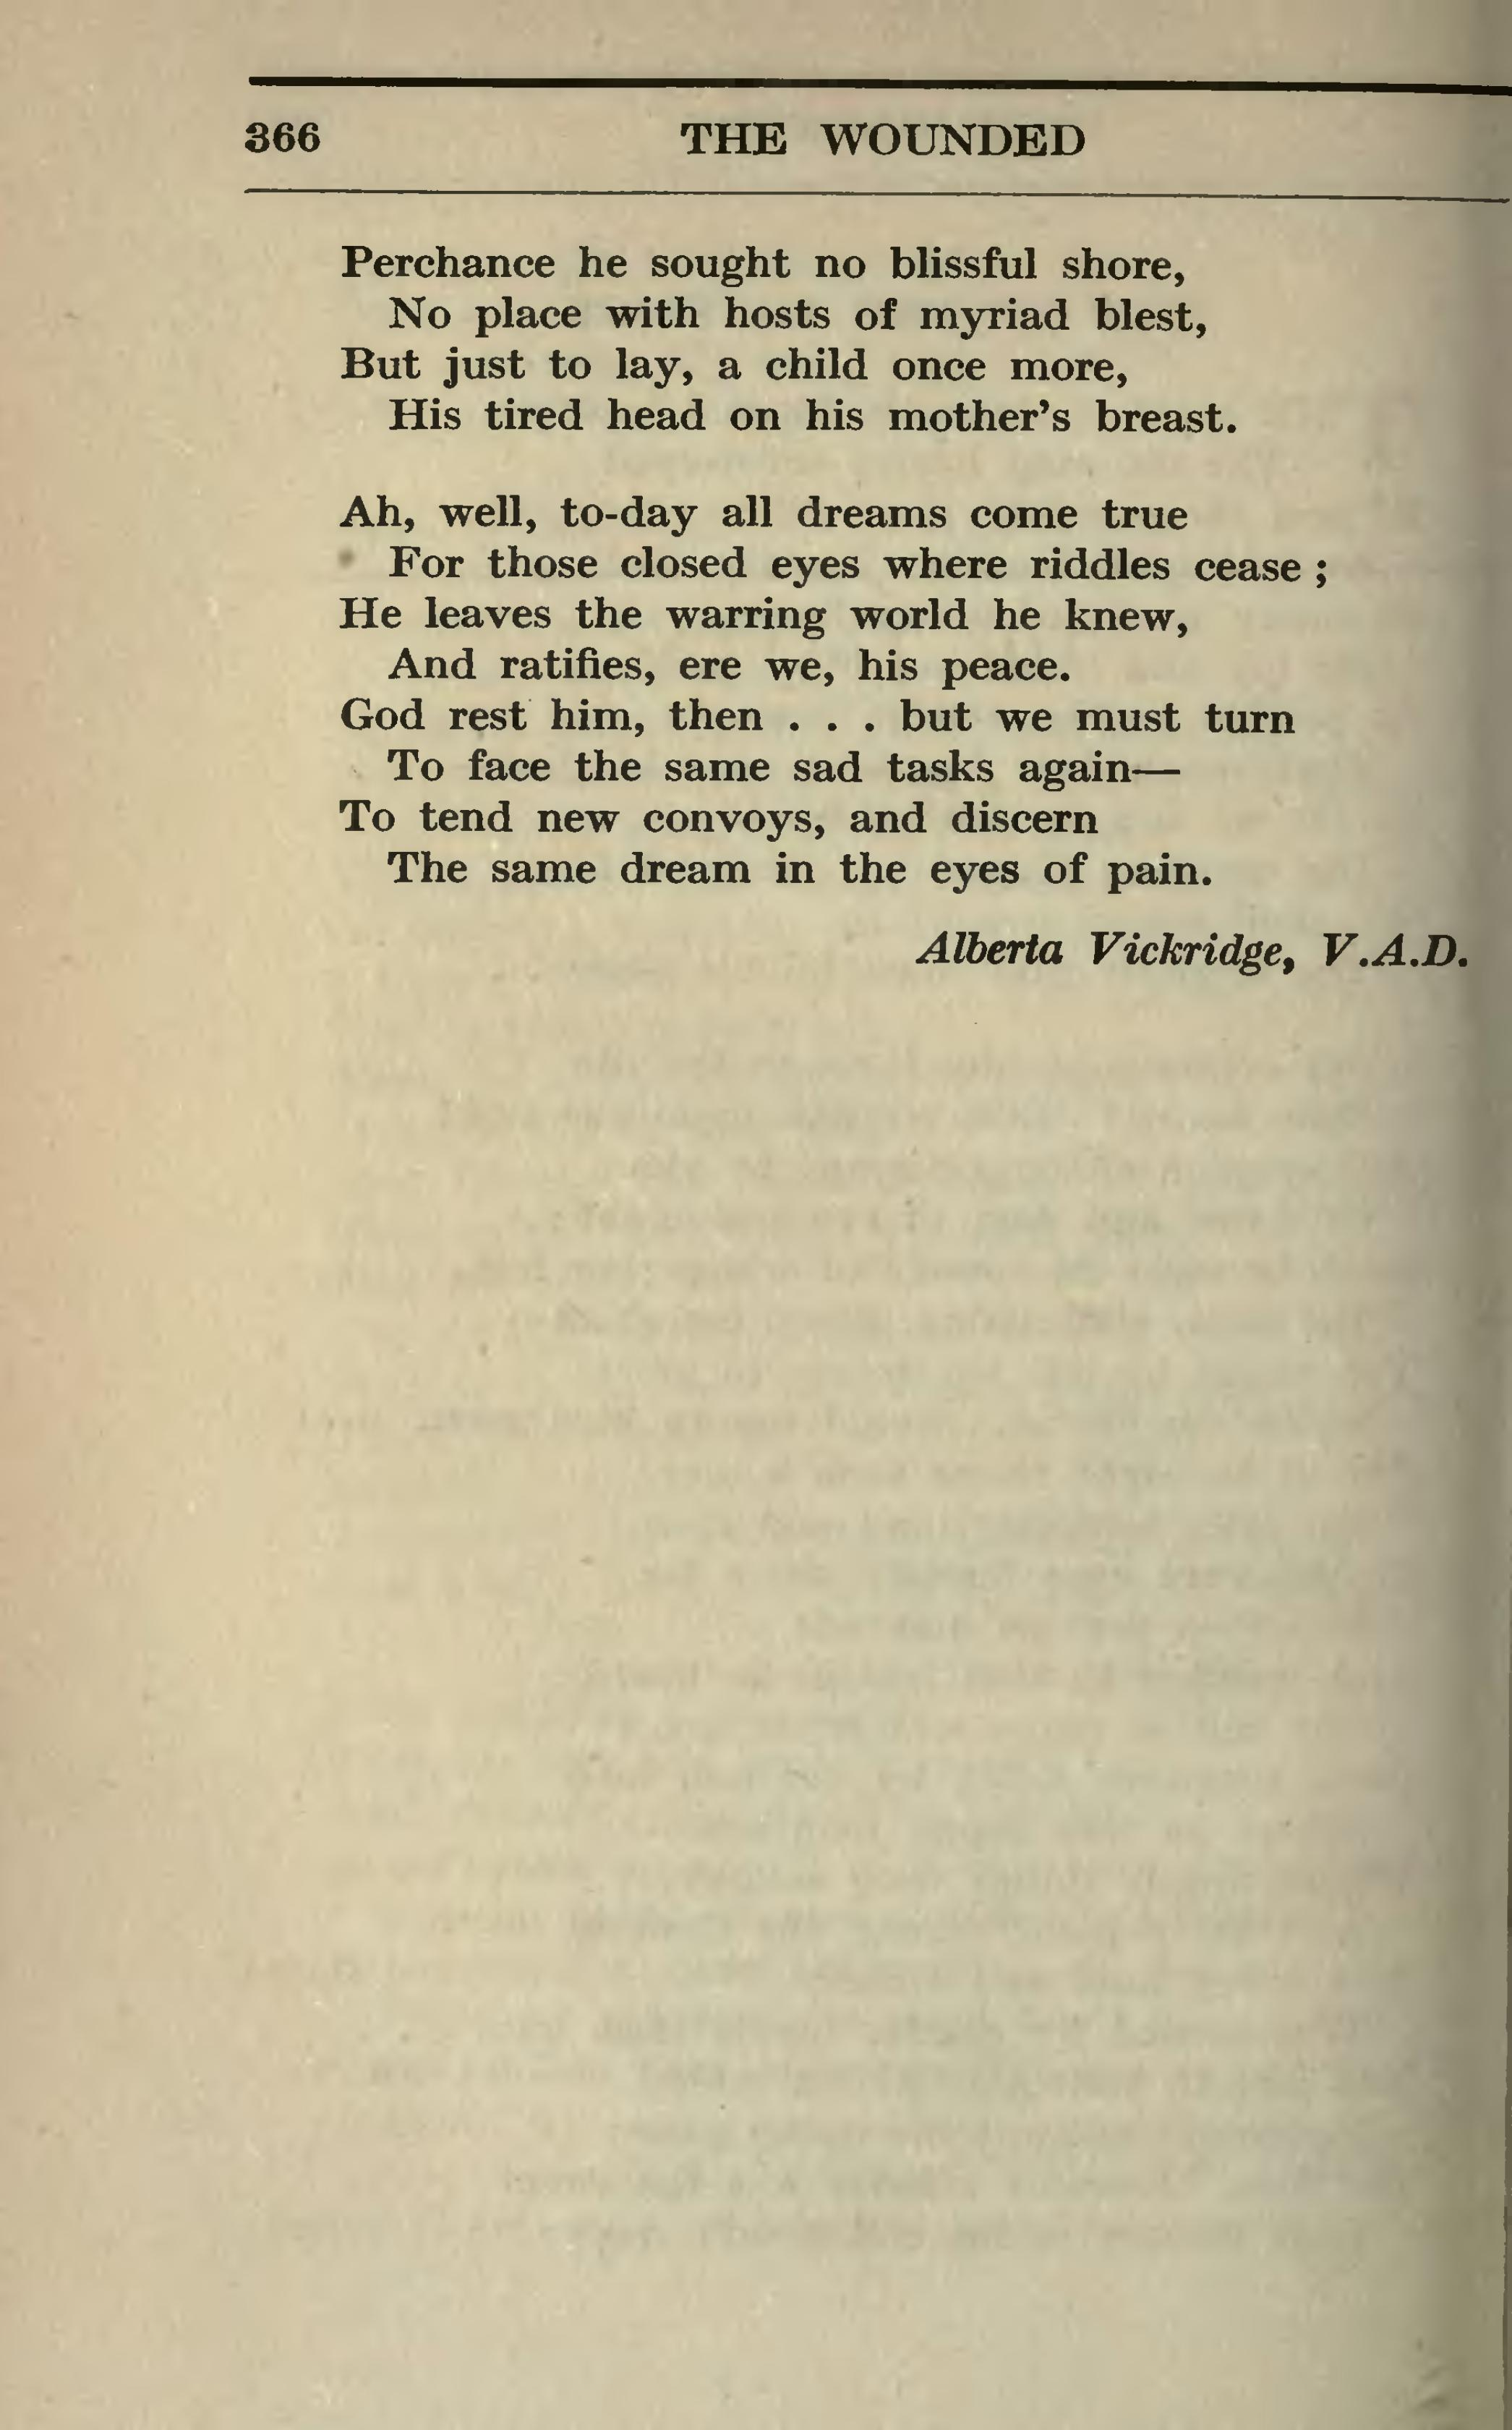 Page:A treasury of war poetry, British and American poems of the